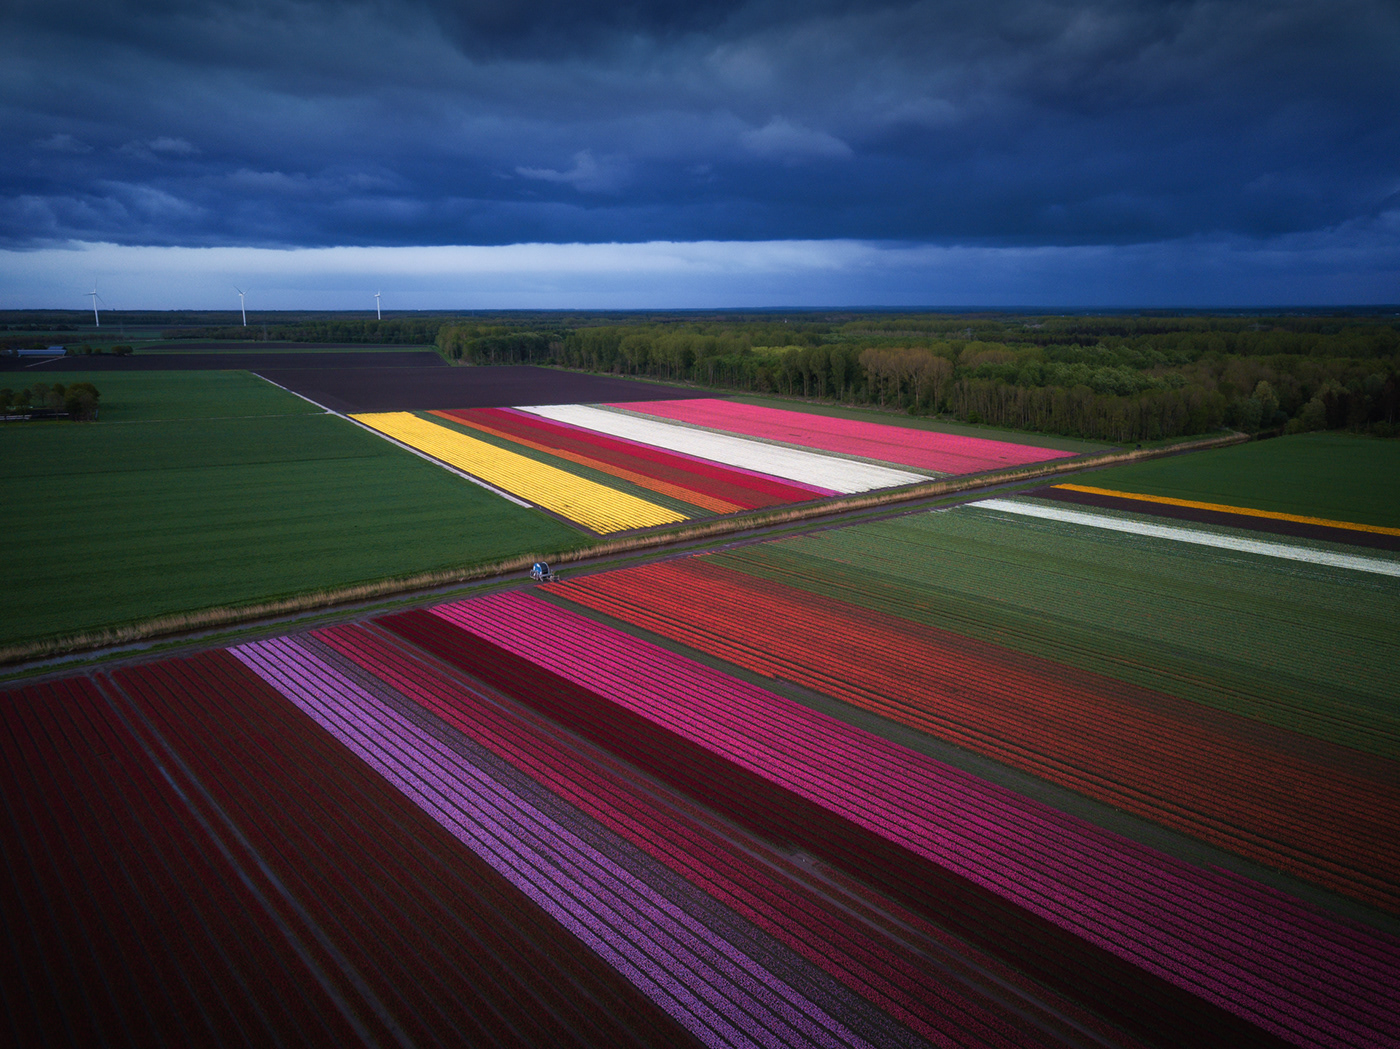 Flower Carpets by Albert Dros